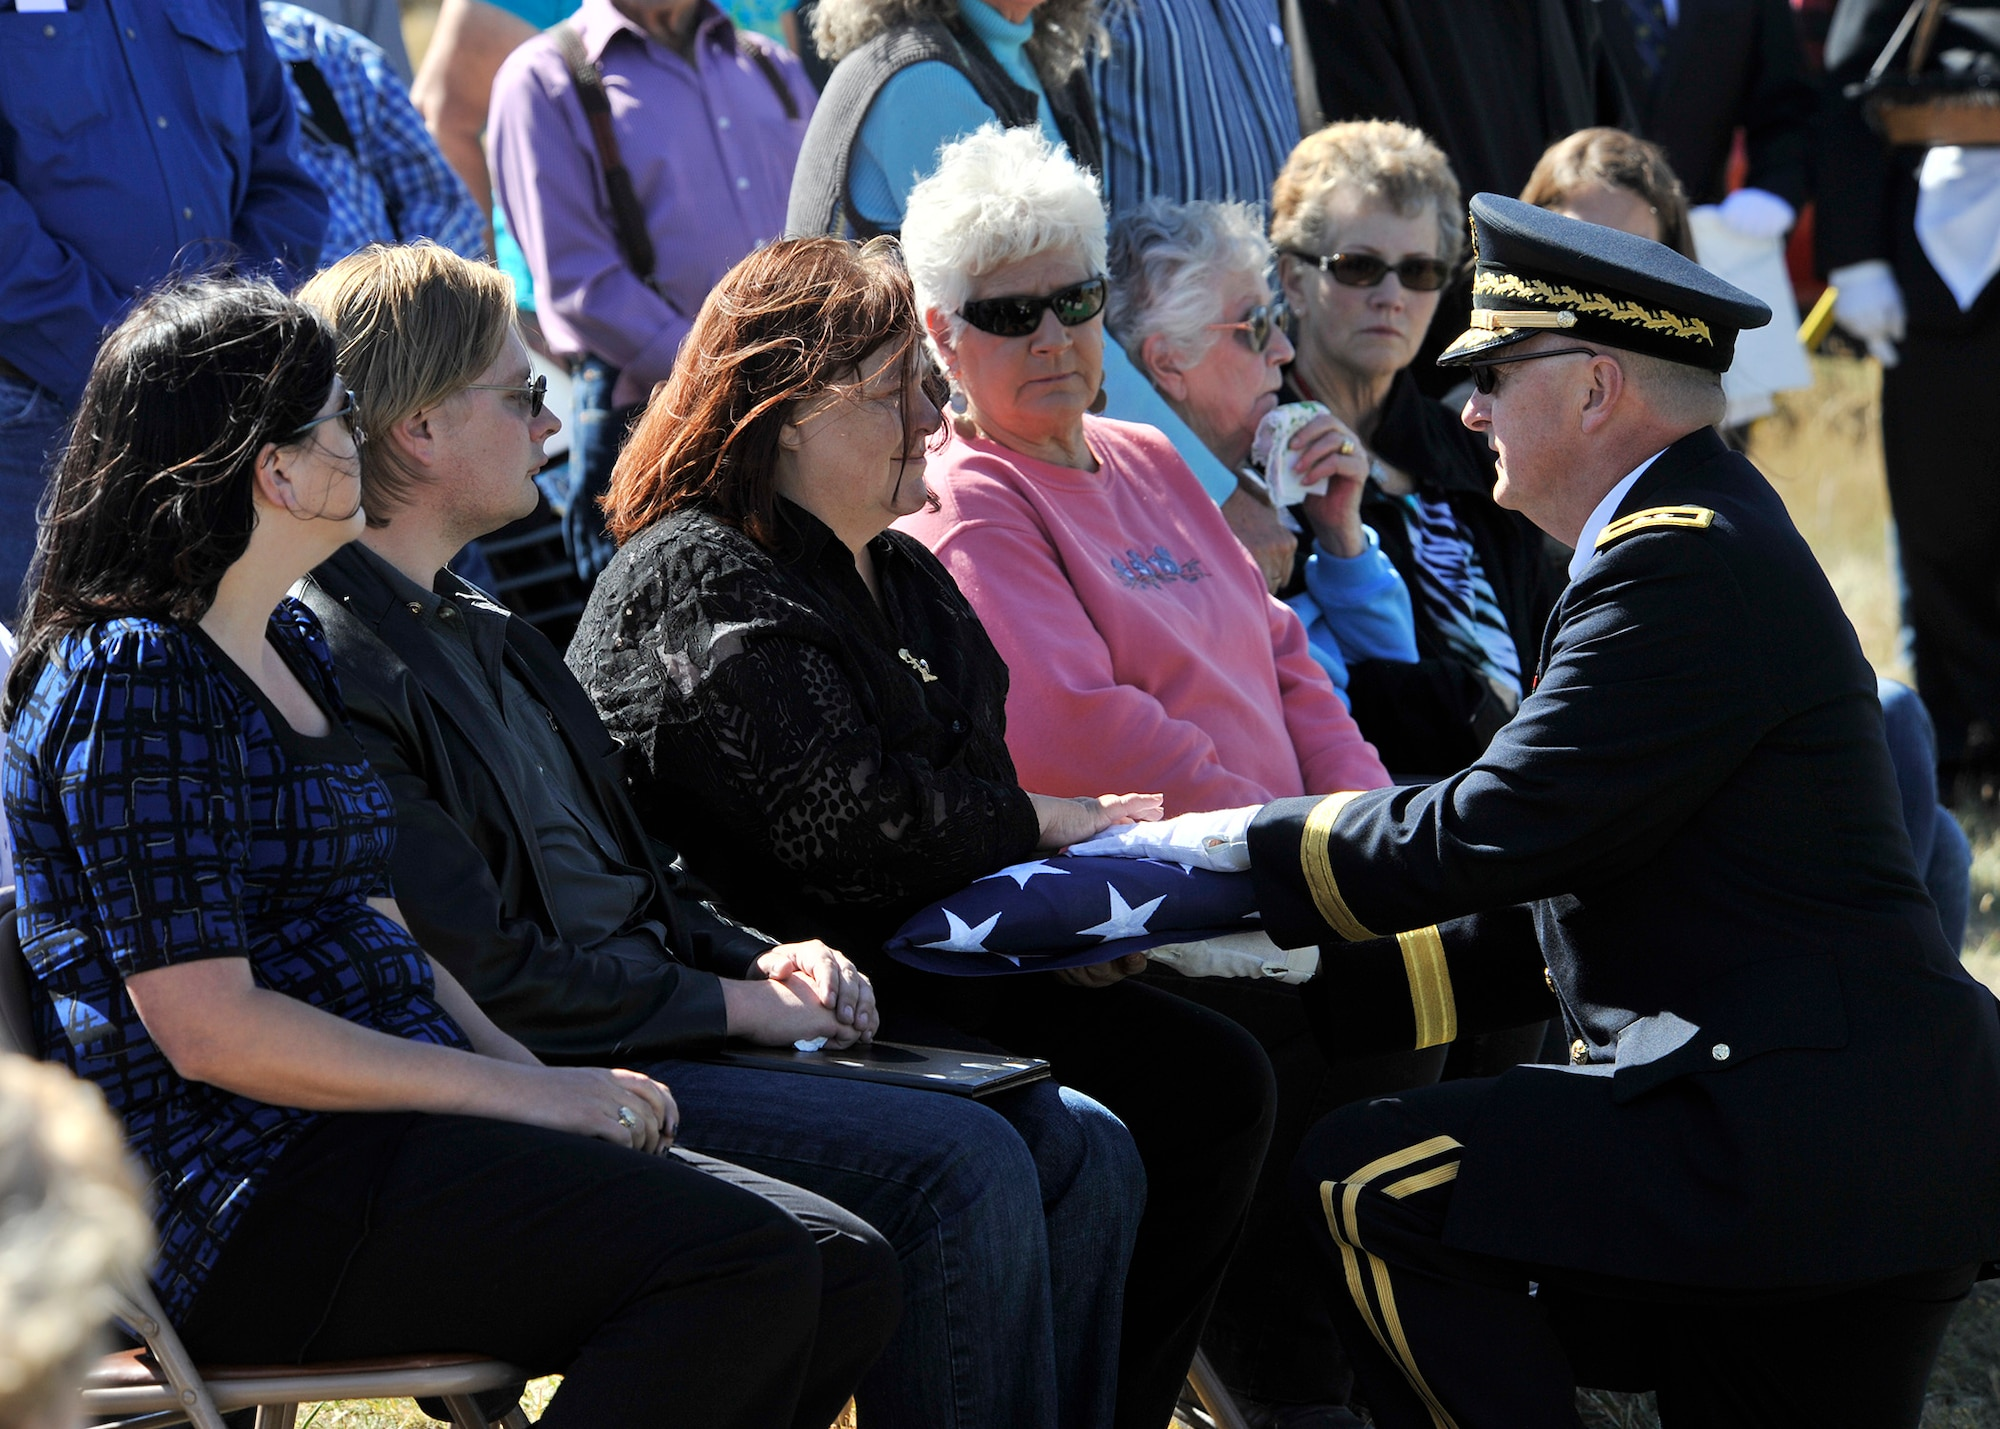 Maj. Gen. Matthew Quinn, l, presents the folded flag from the casket of Army Air Forces 1st Lt. William D. Bernier to Sandi Jones, Bernier's niece, Sept. 19, 2014,  at Augusta Cemetery, Mont. Bernier was killed in action over New Guinea during WWII, and his remains were positively identified earlier this year. Quinn is the adjutant general of the Montana National Guard. (Air Force photo/John Turner)